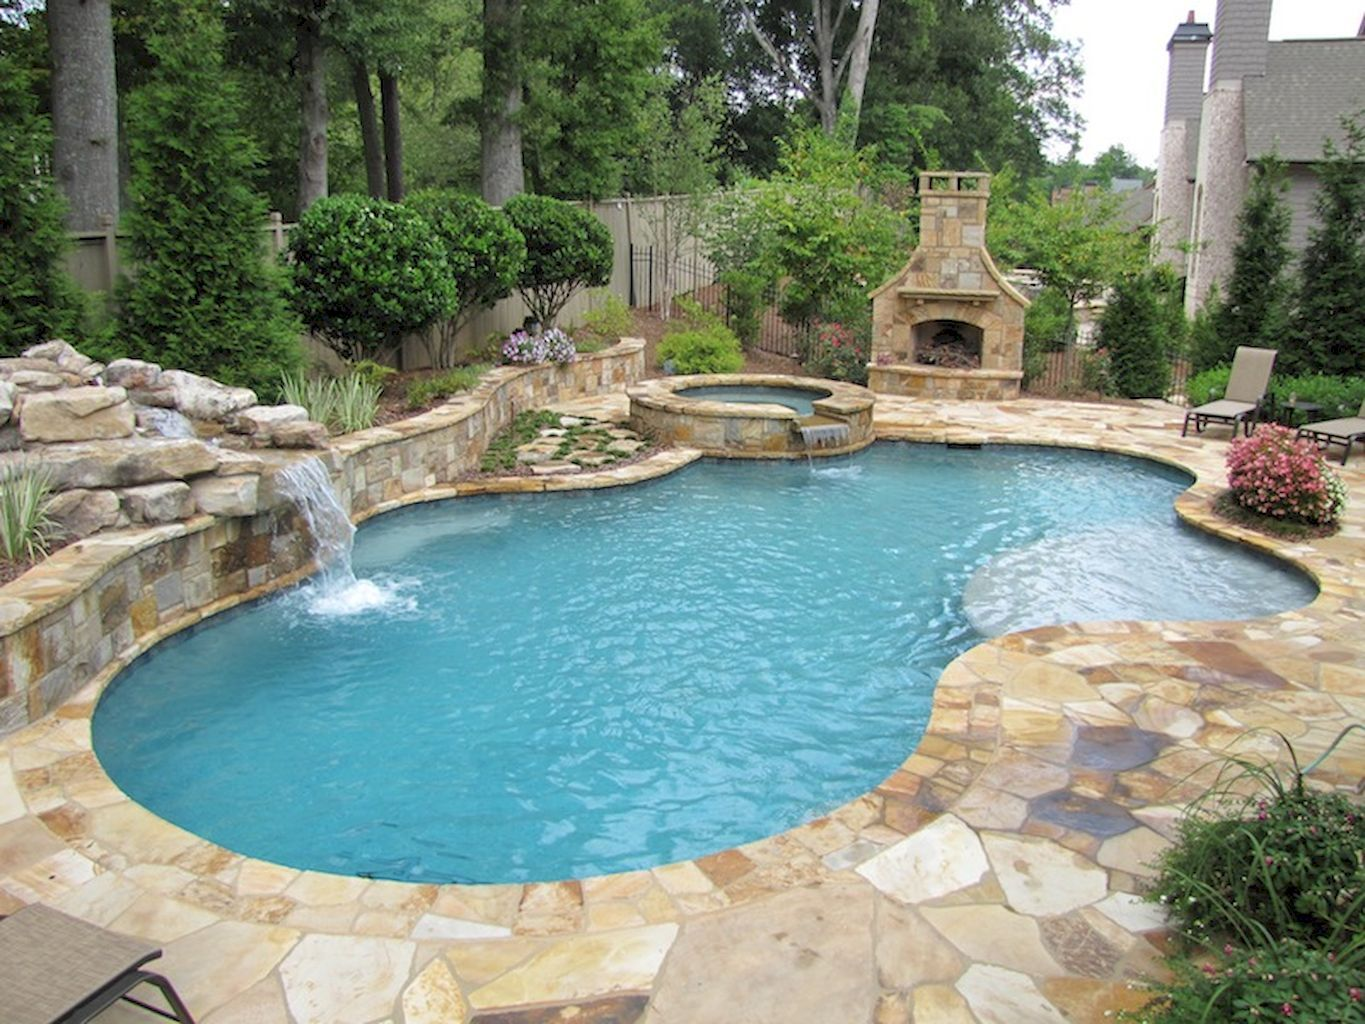 Gorgeous 80 Fresh And Cool Swimming Pool Designs For Your Backyard Ideas  Https://decoremodel.com/80 Fresh Cool Swimming Pool Designs Backyard Ideas/ Nice Look